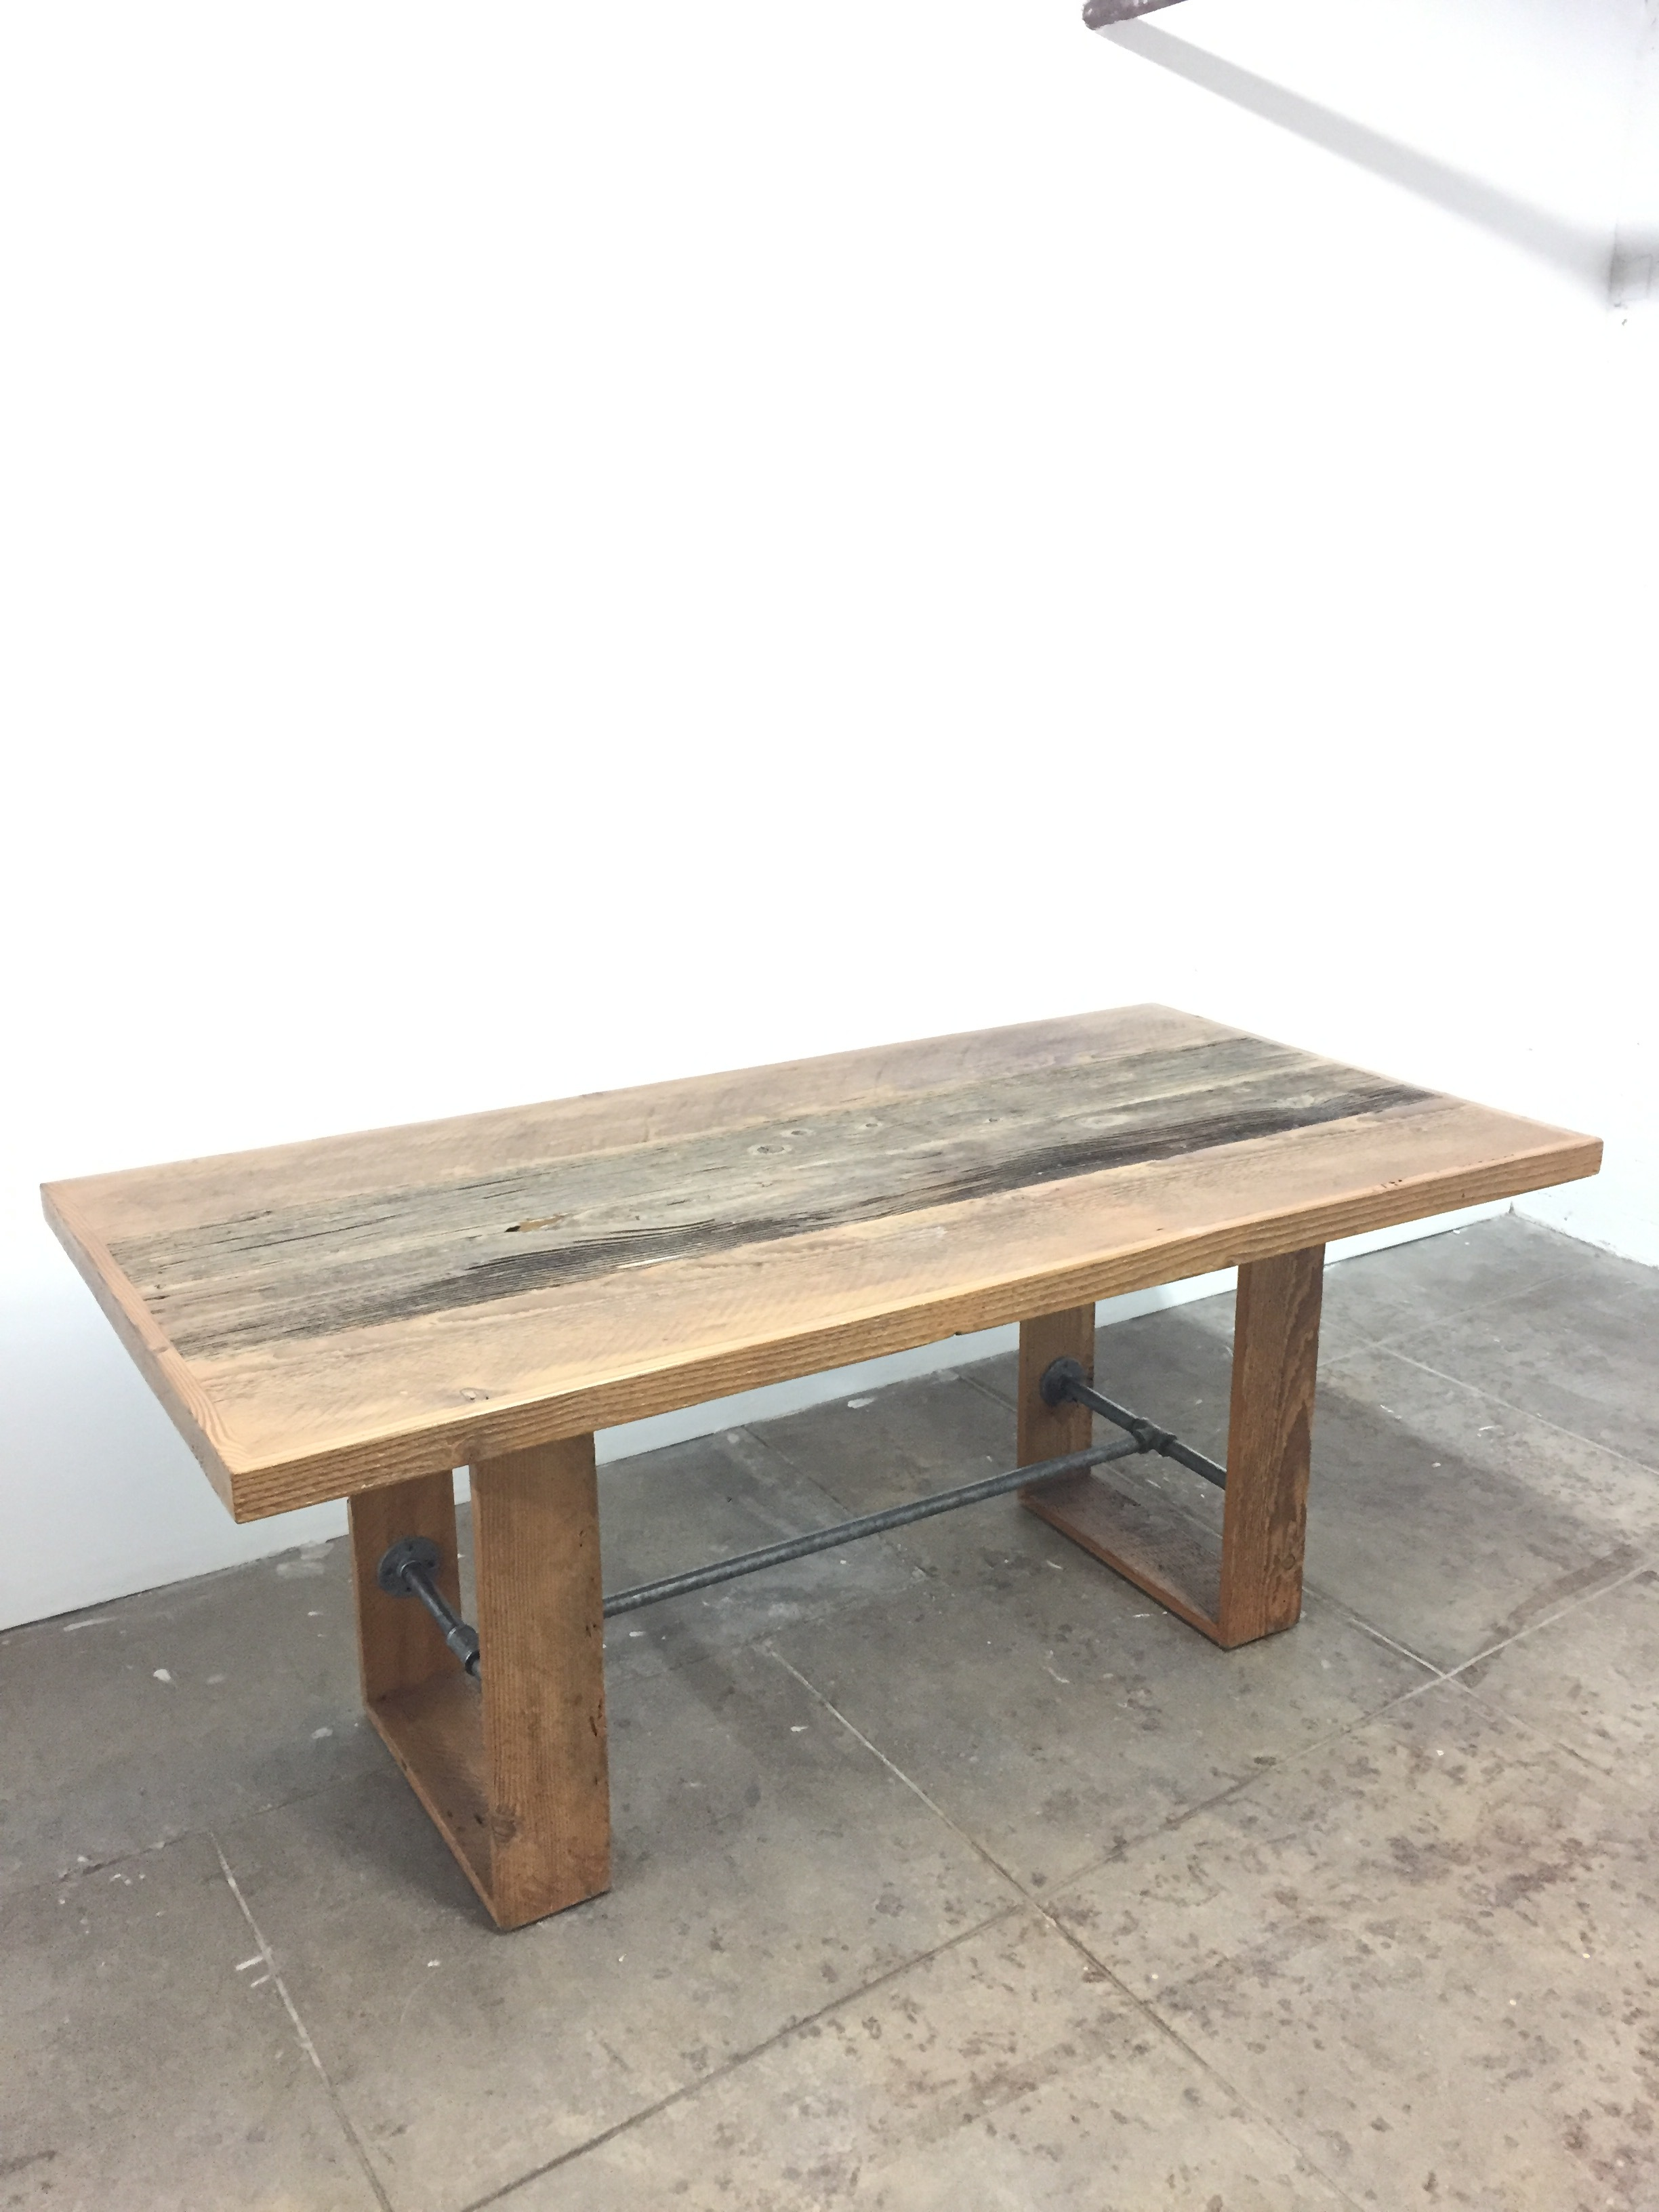 Table 6' x 3' QTY:1 Price: $100